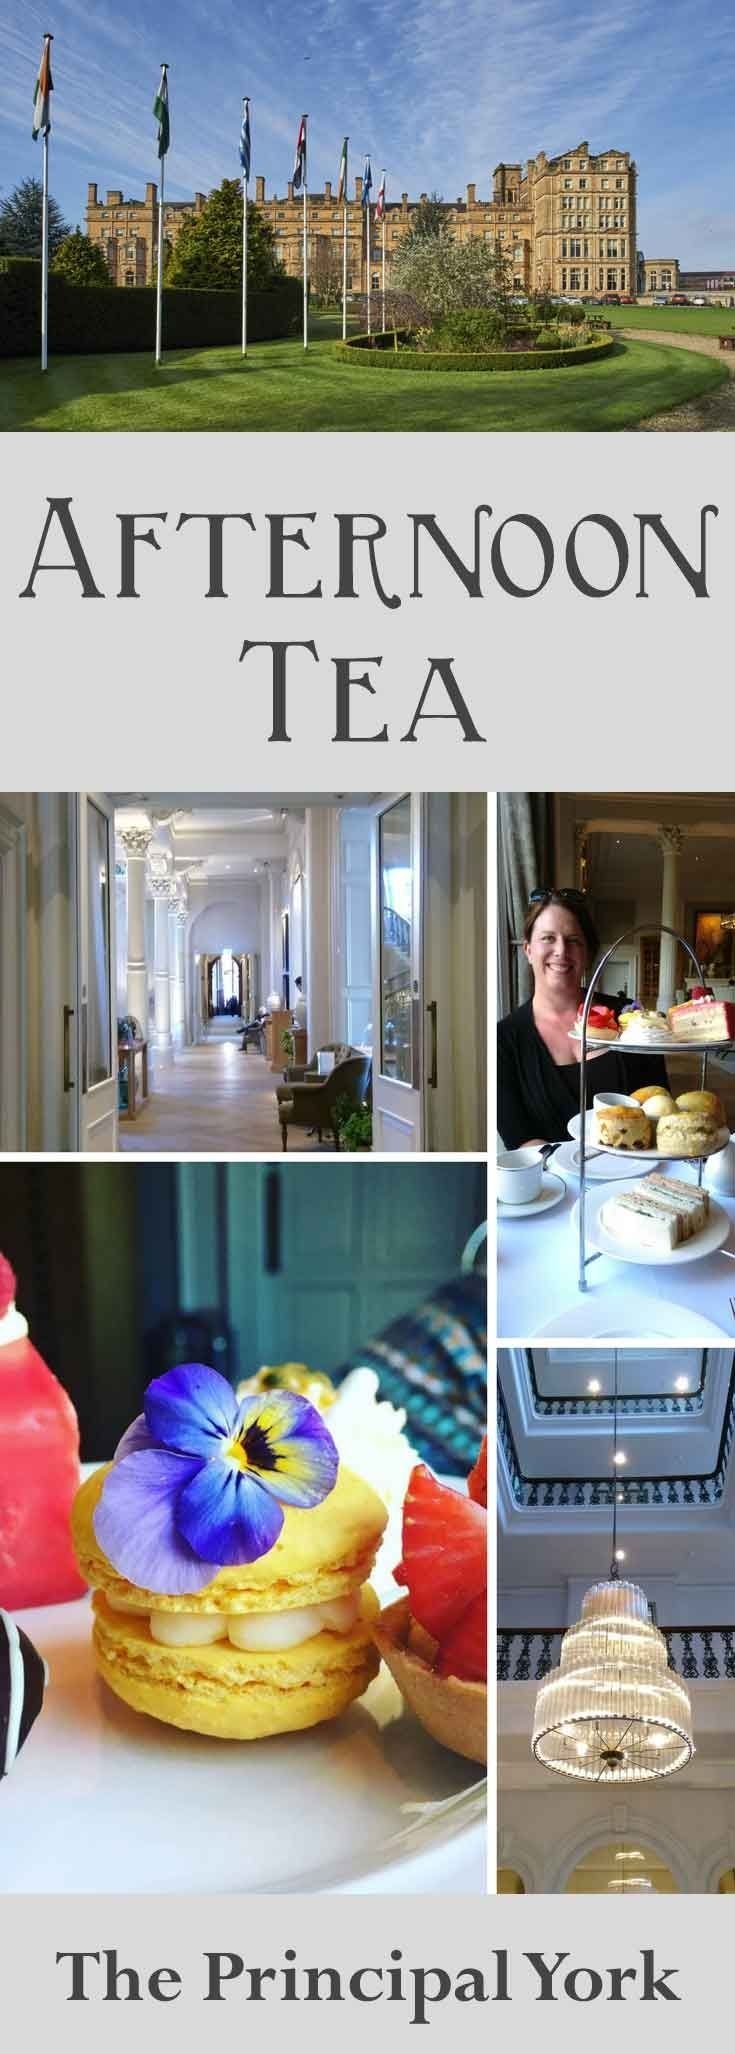 Looking for a decadent Afternoon Tea? York has lots to offer! Have a look at my review of the Principal York Hotel (Formerly The Royal York Hotel).  From salmon or cucumber sandwiches, to cake, macarons, tartlets and scones with jam and clotted cream.  Br